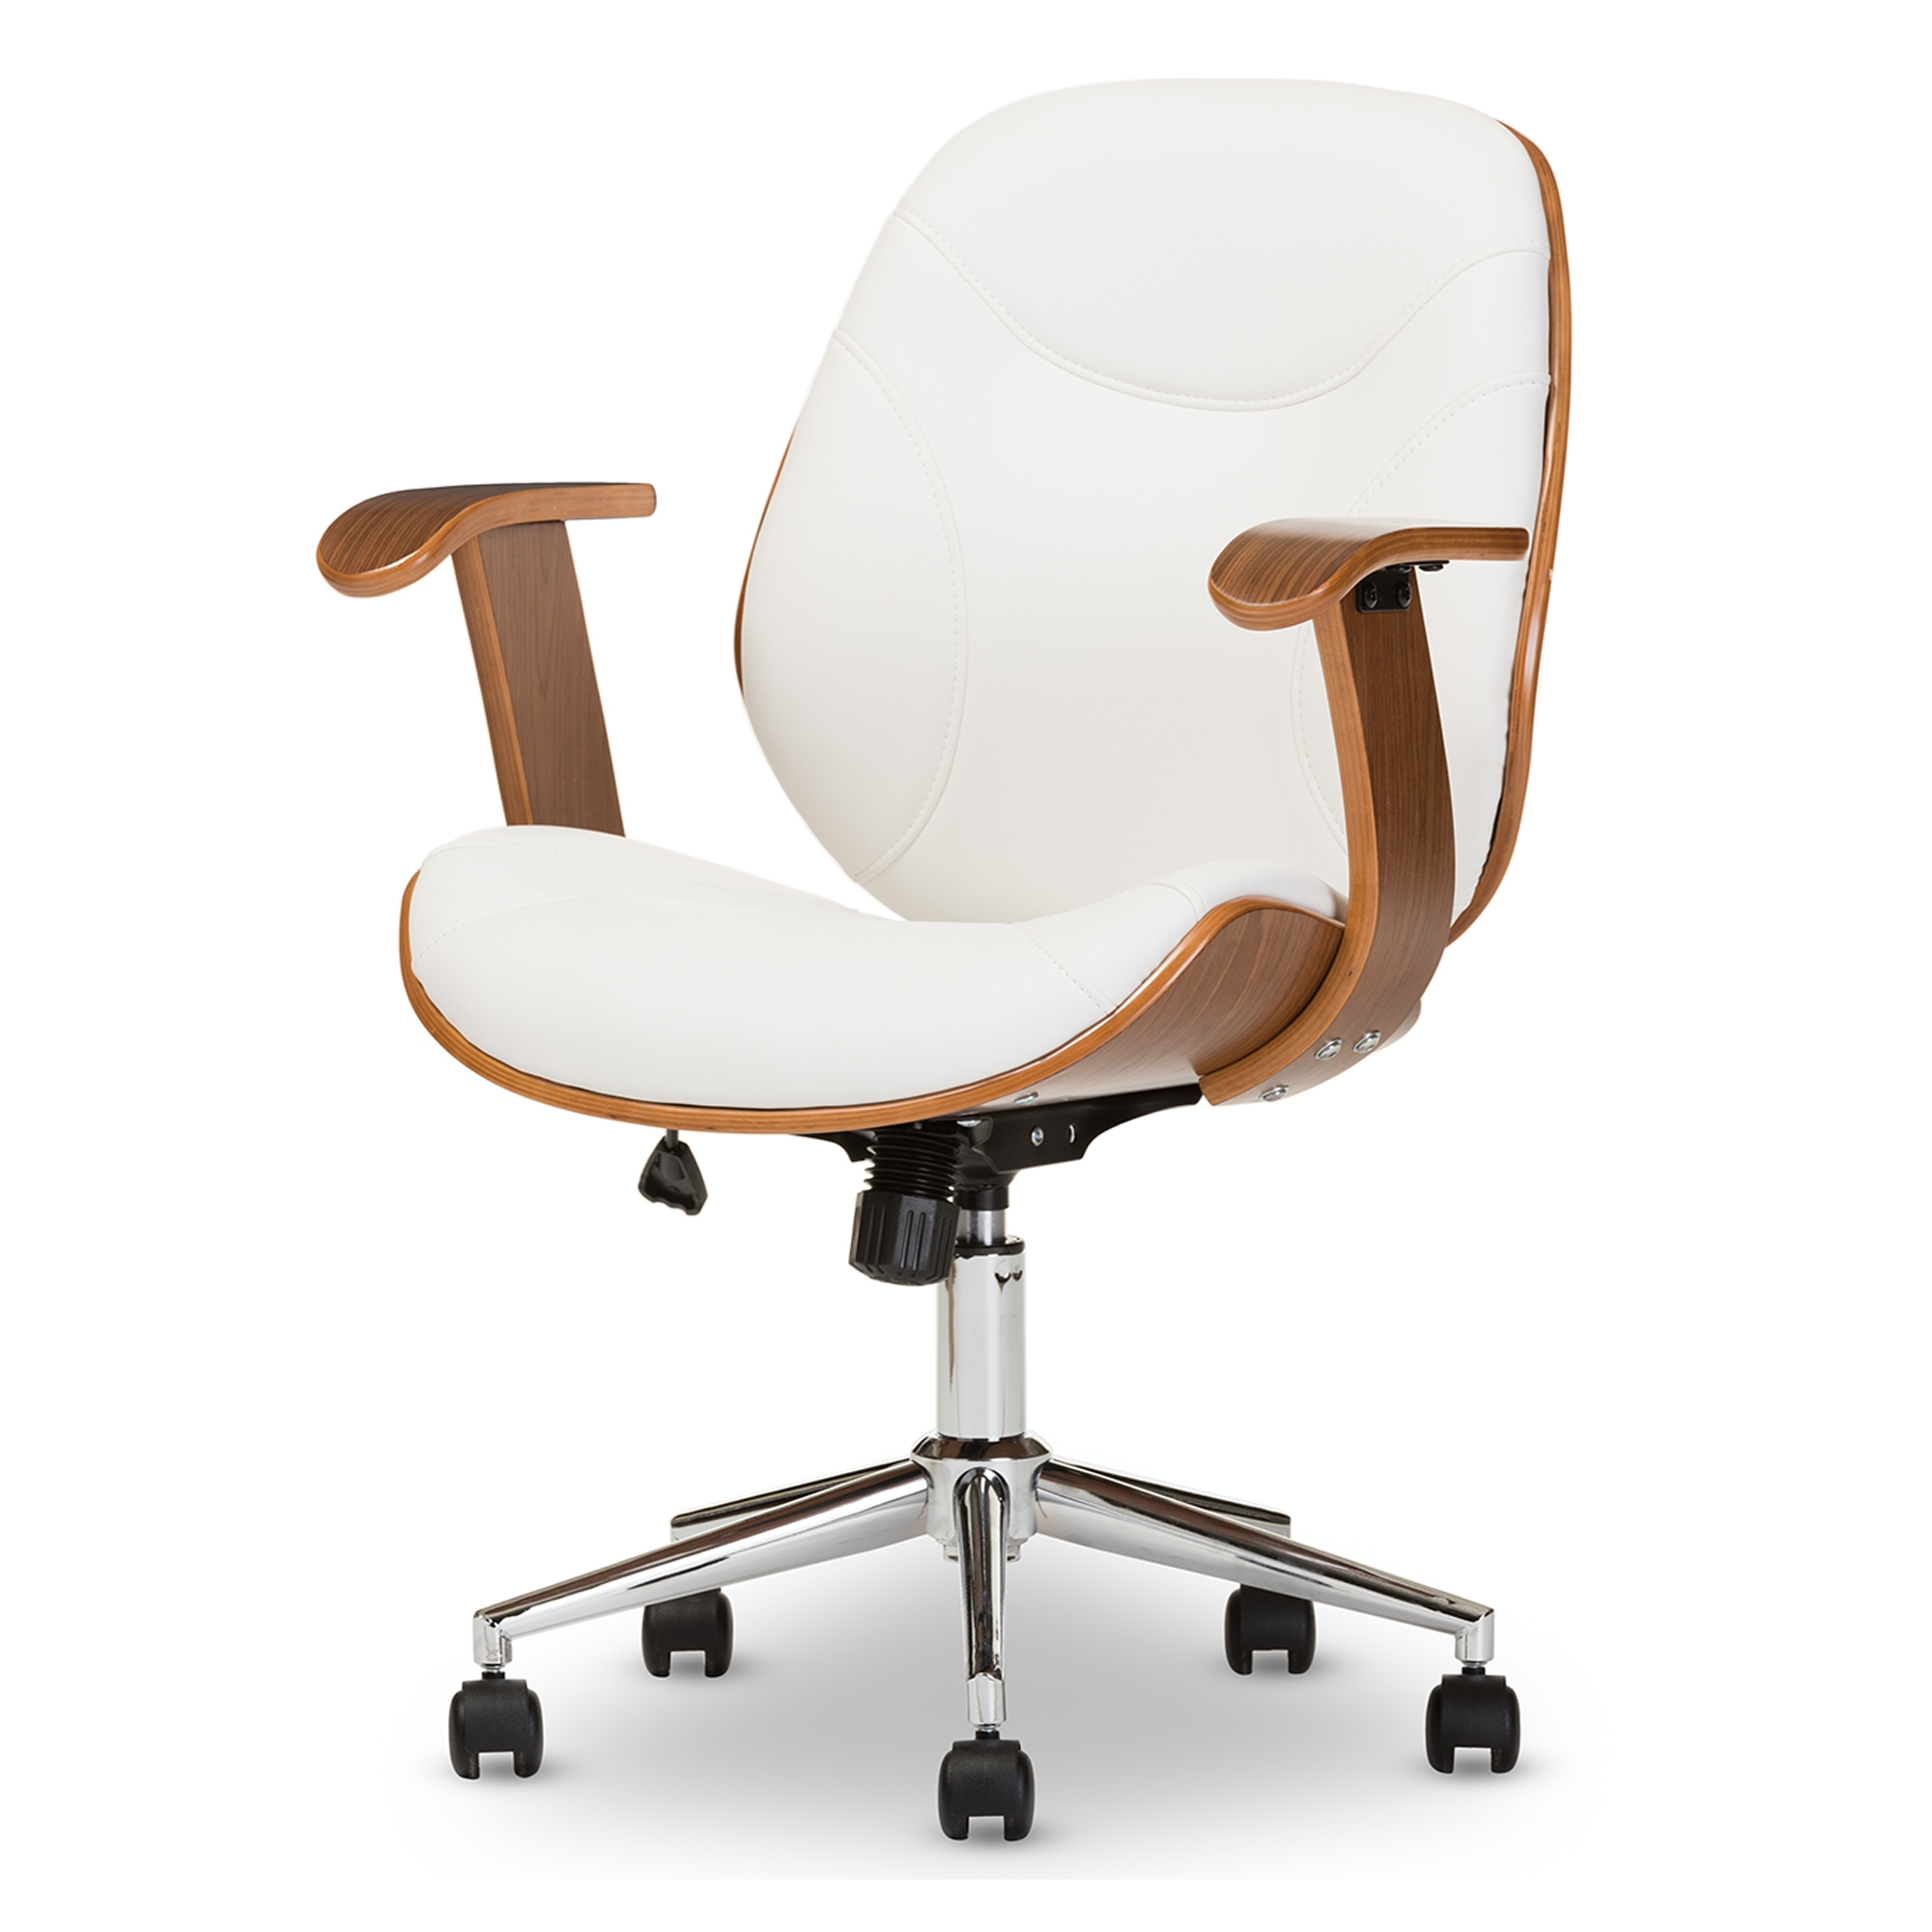 ... Baxton Studio Rathburn Modern And Contemporary White And Walnut Office  Chair   IESD 2235  ...